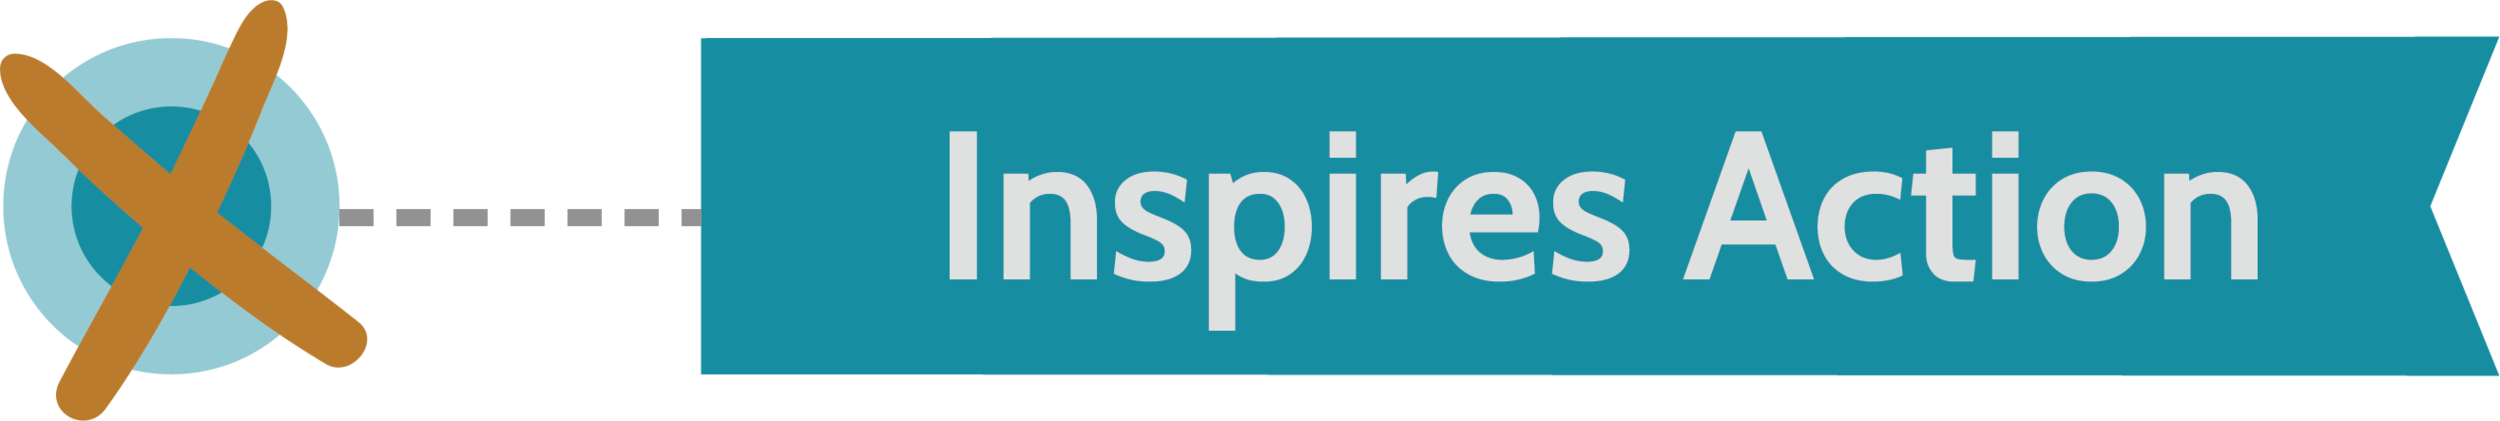 Inspire-Action-Tag.png